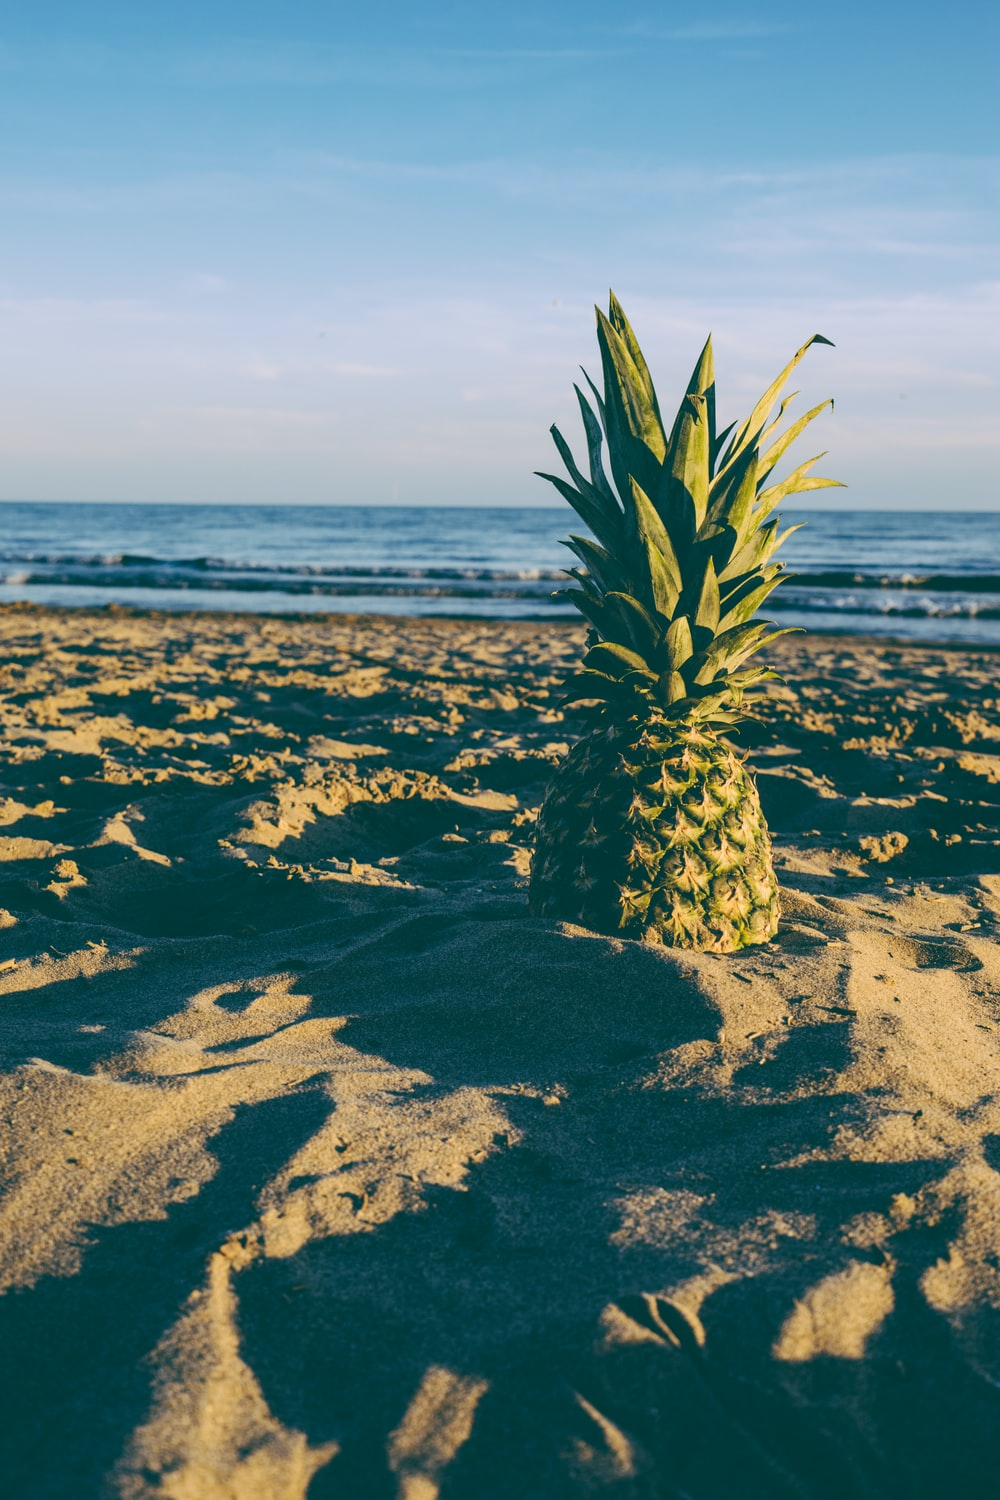 shallow focus photo of yellow pineapple on sand